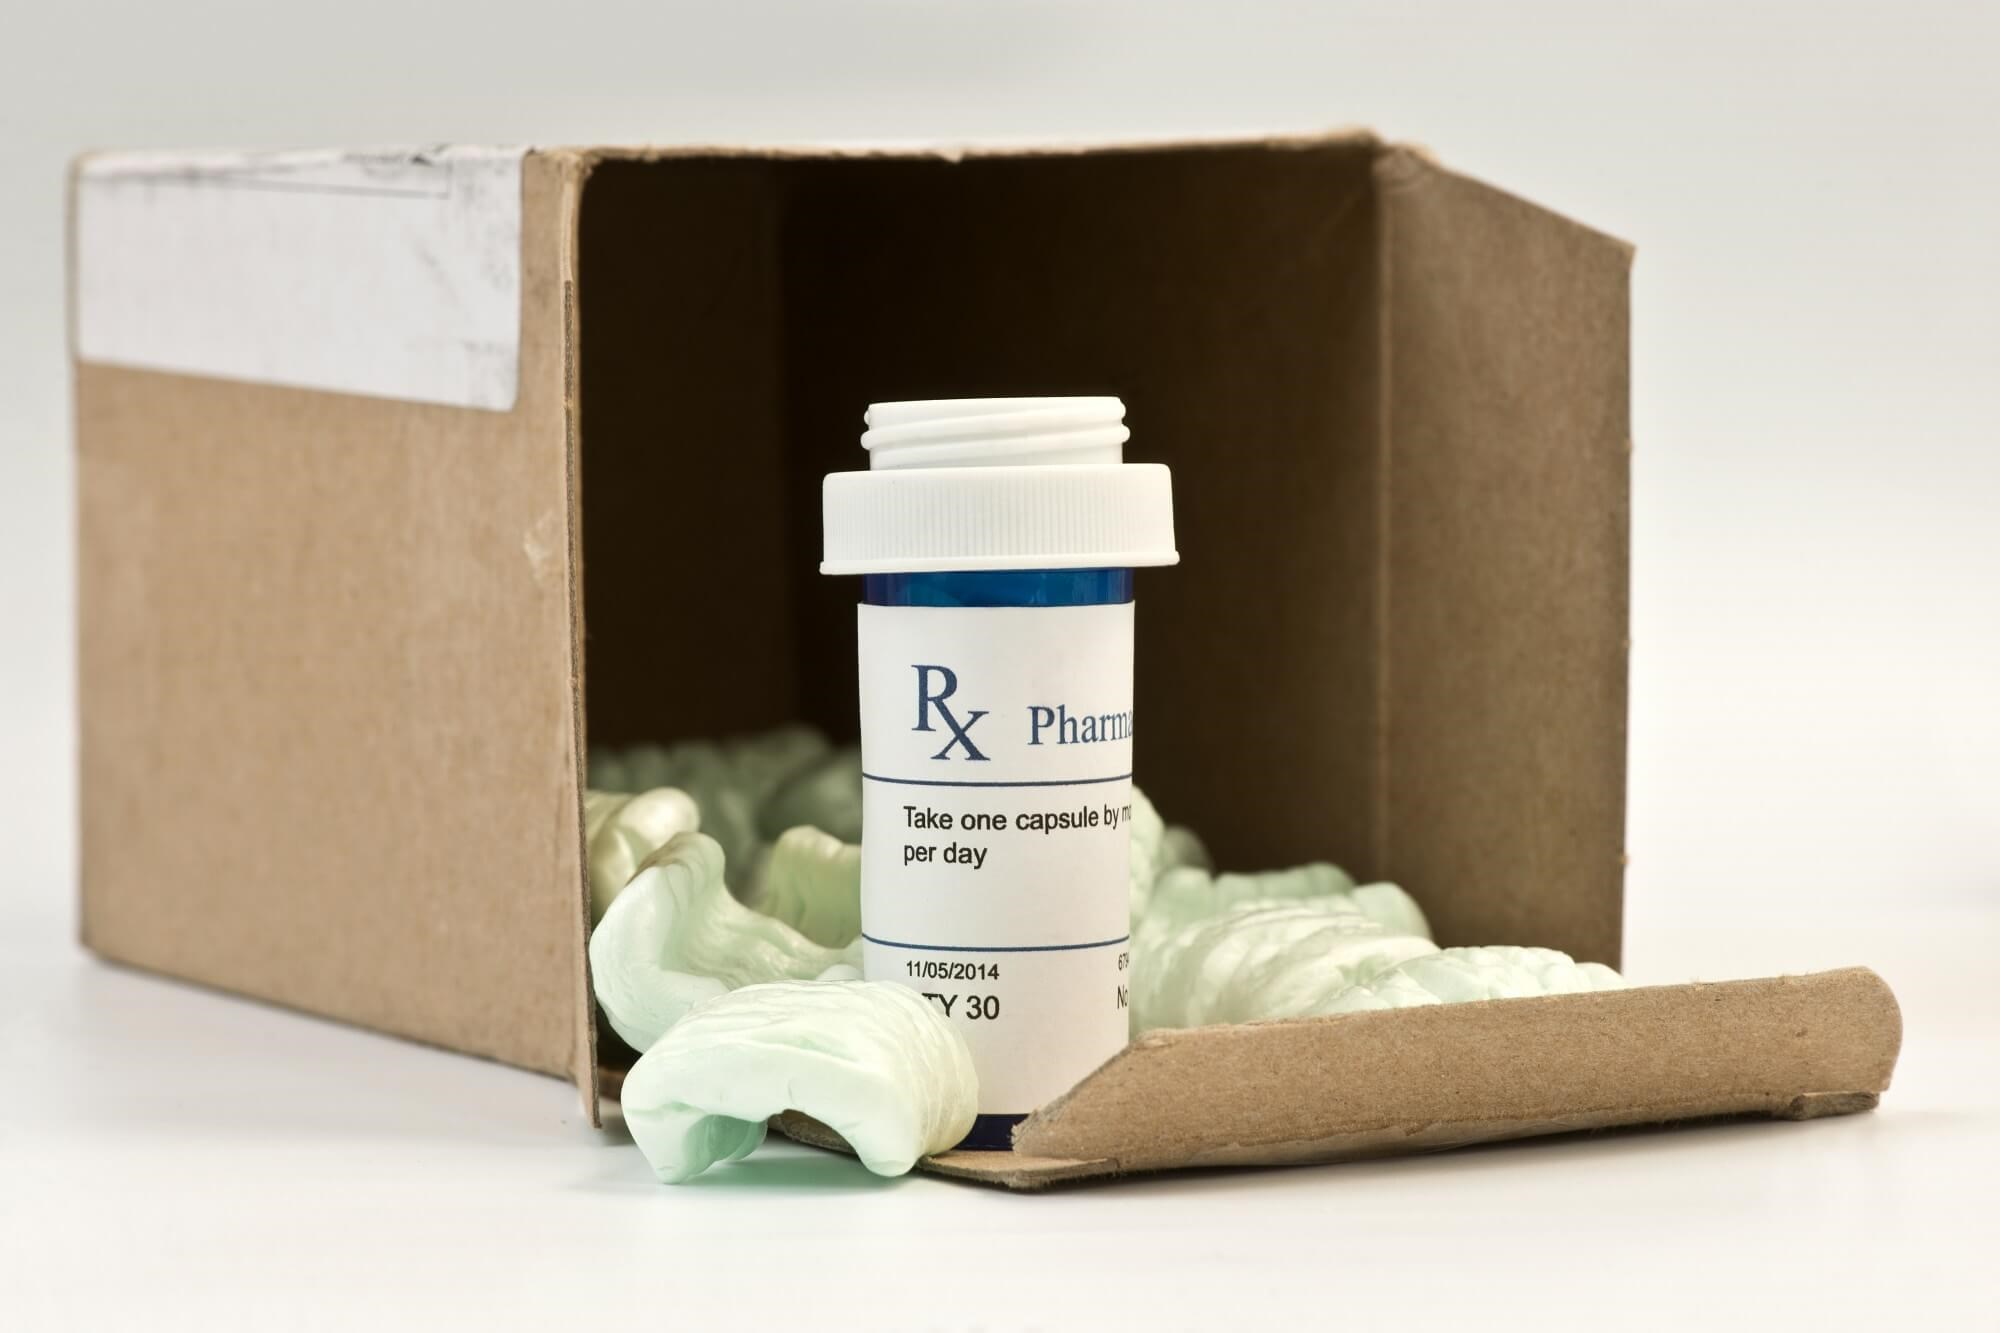 Eligible prescriptions can be delivered to the home as early as next-day for a flat fee of $4.99.